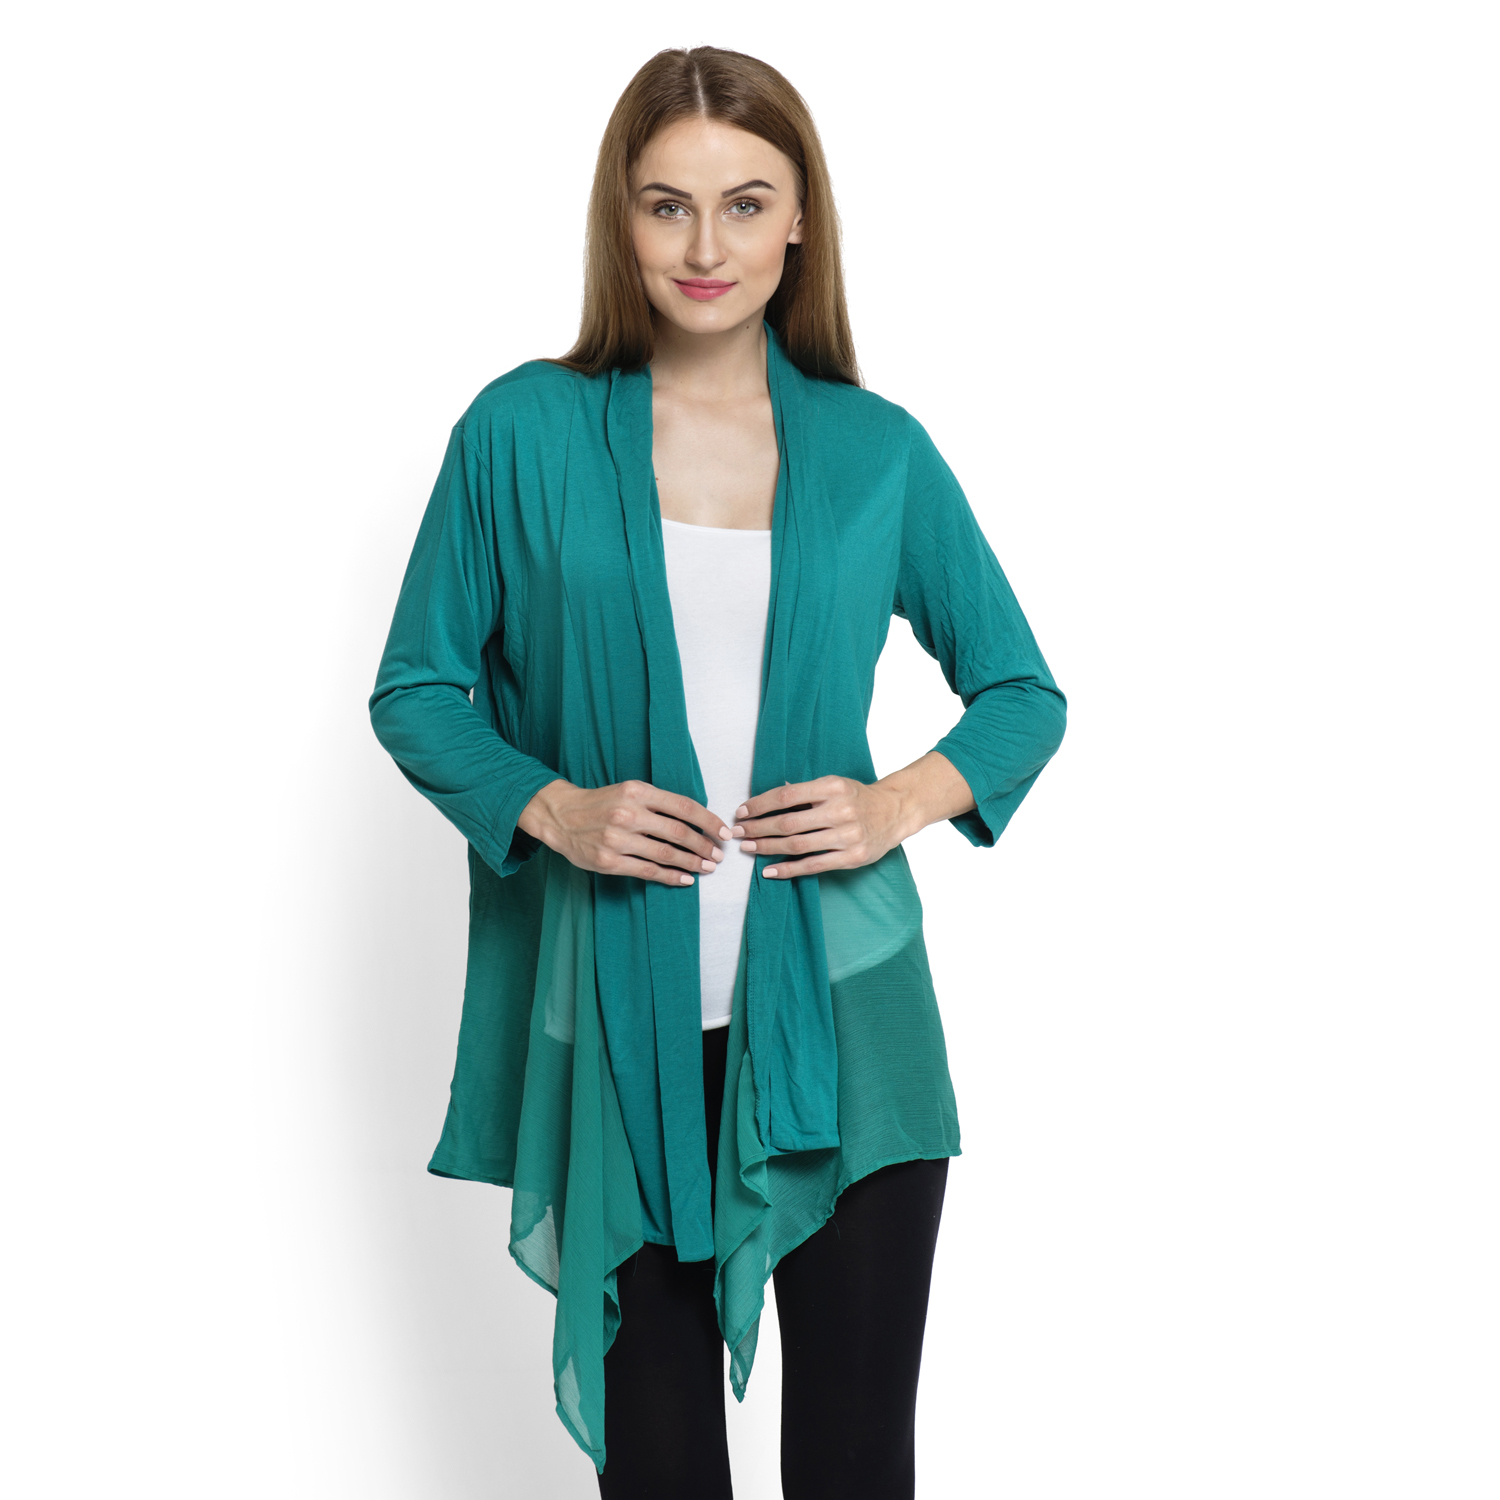 Teal 100% Viscose Long Sleeve Cardigan with Chiffon Trim (Free ...